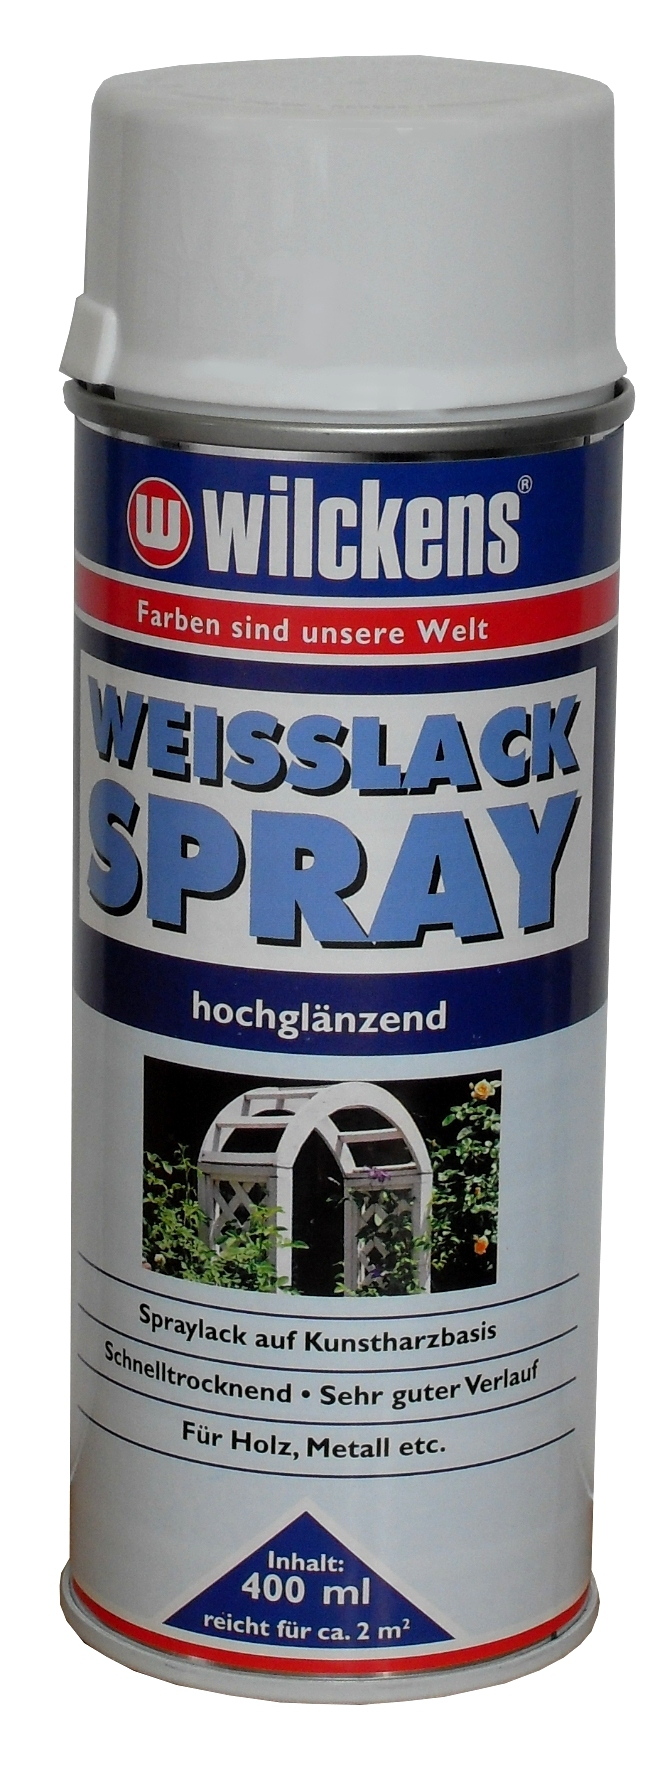 wilckens weisslack spray 400ml hochgl nzend oder seidenmatt f r holz metall ebay. Black Bedroom Furniture Sets. Home Design Ideas